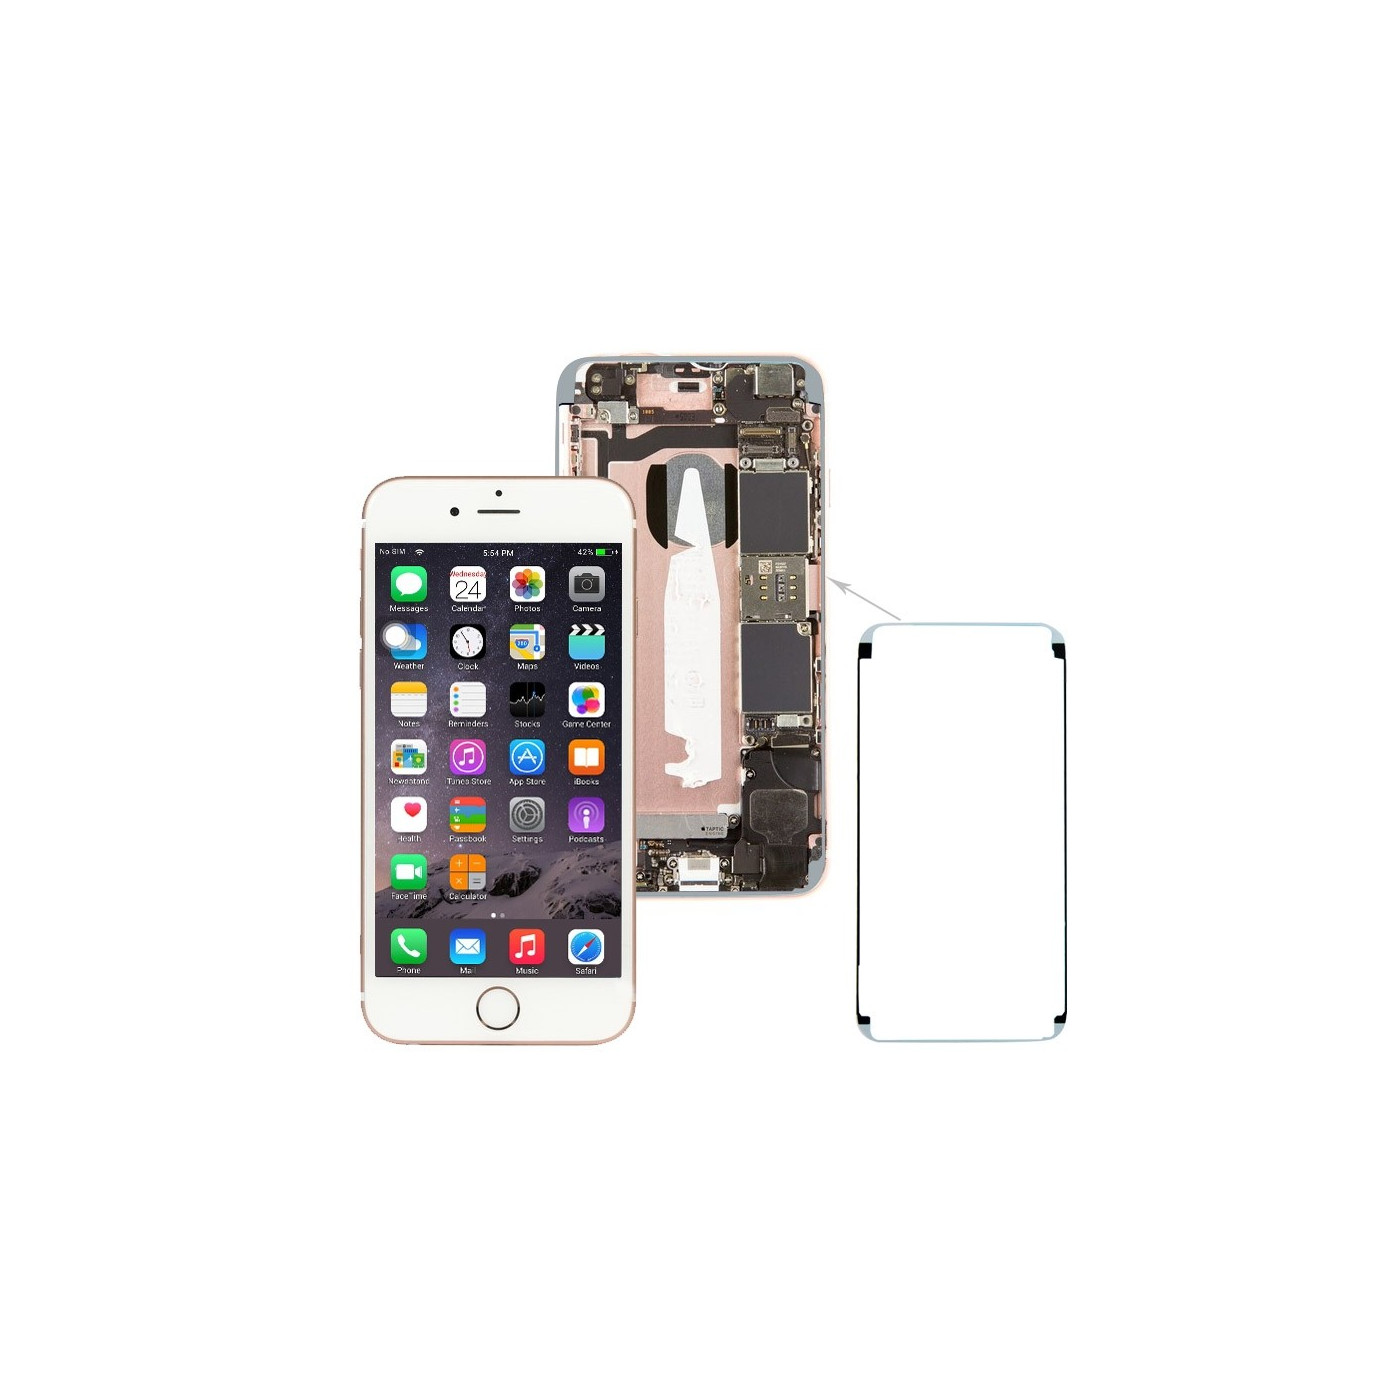 Double-sided adhesive waterproof LCD for iPhone 6S